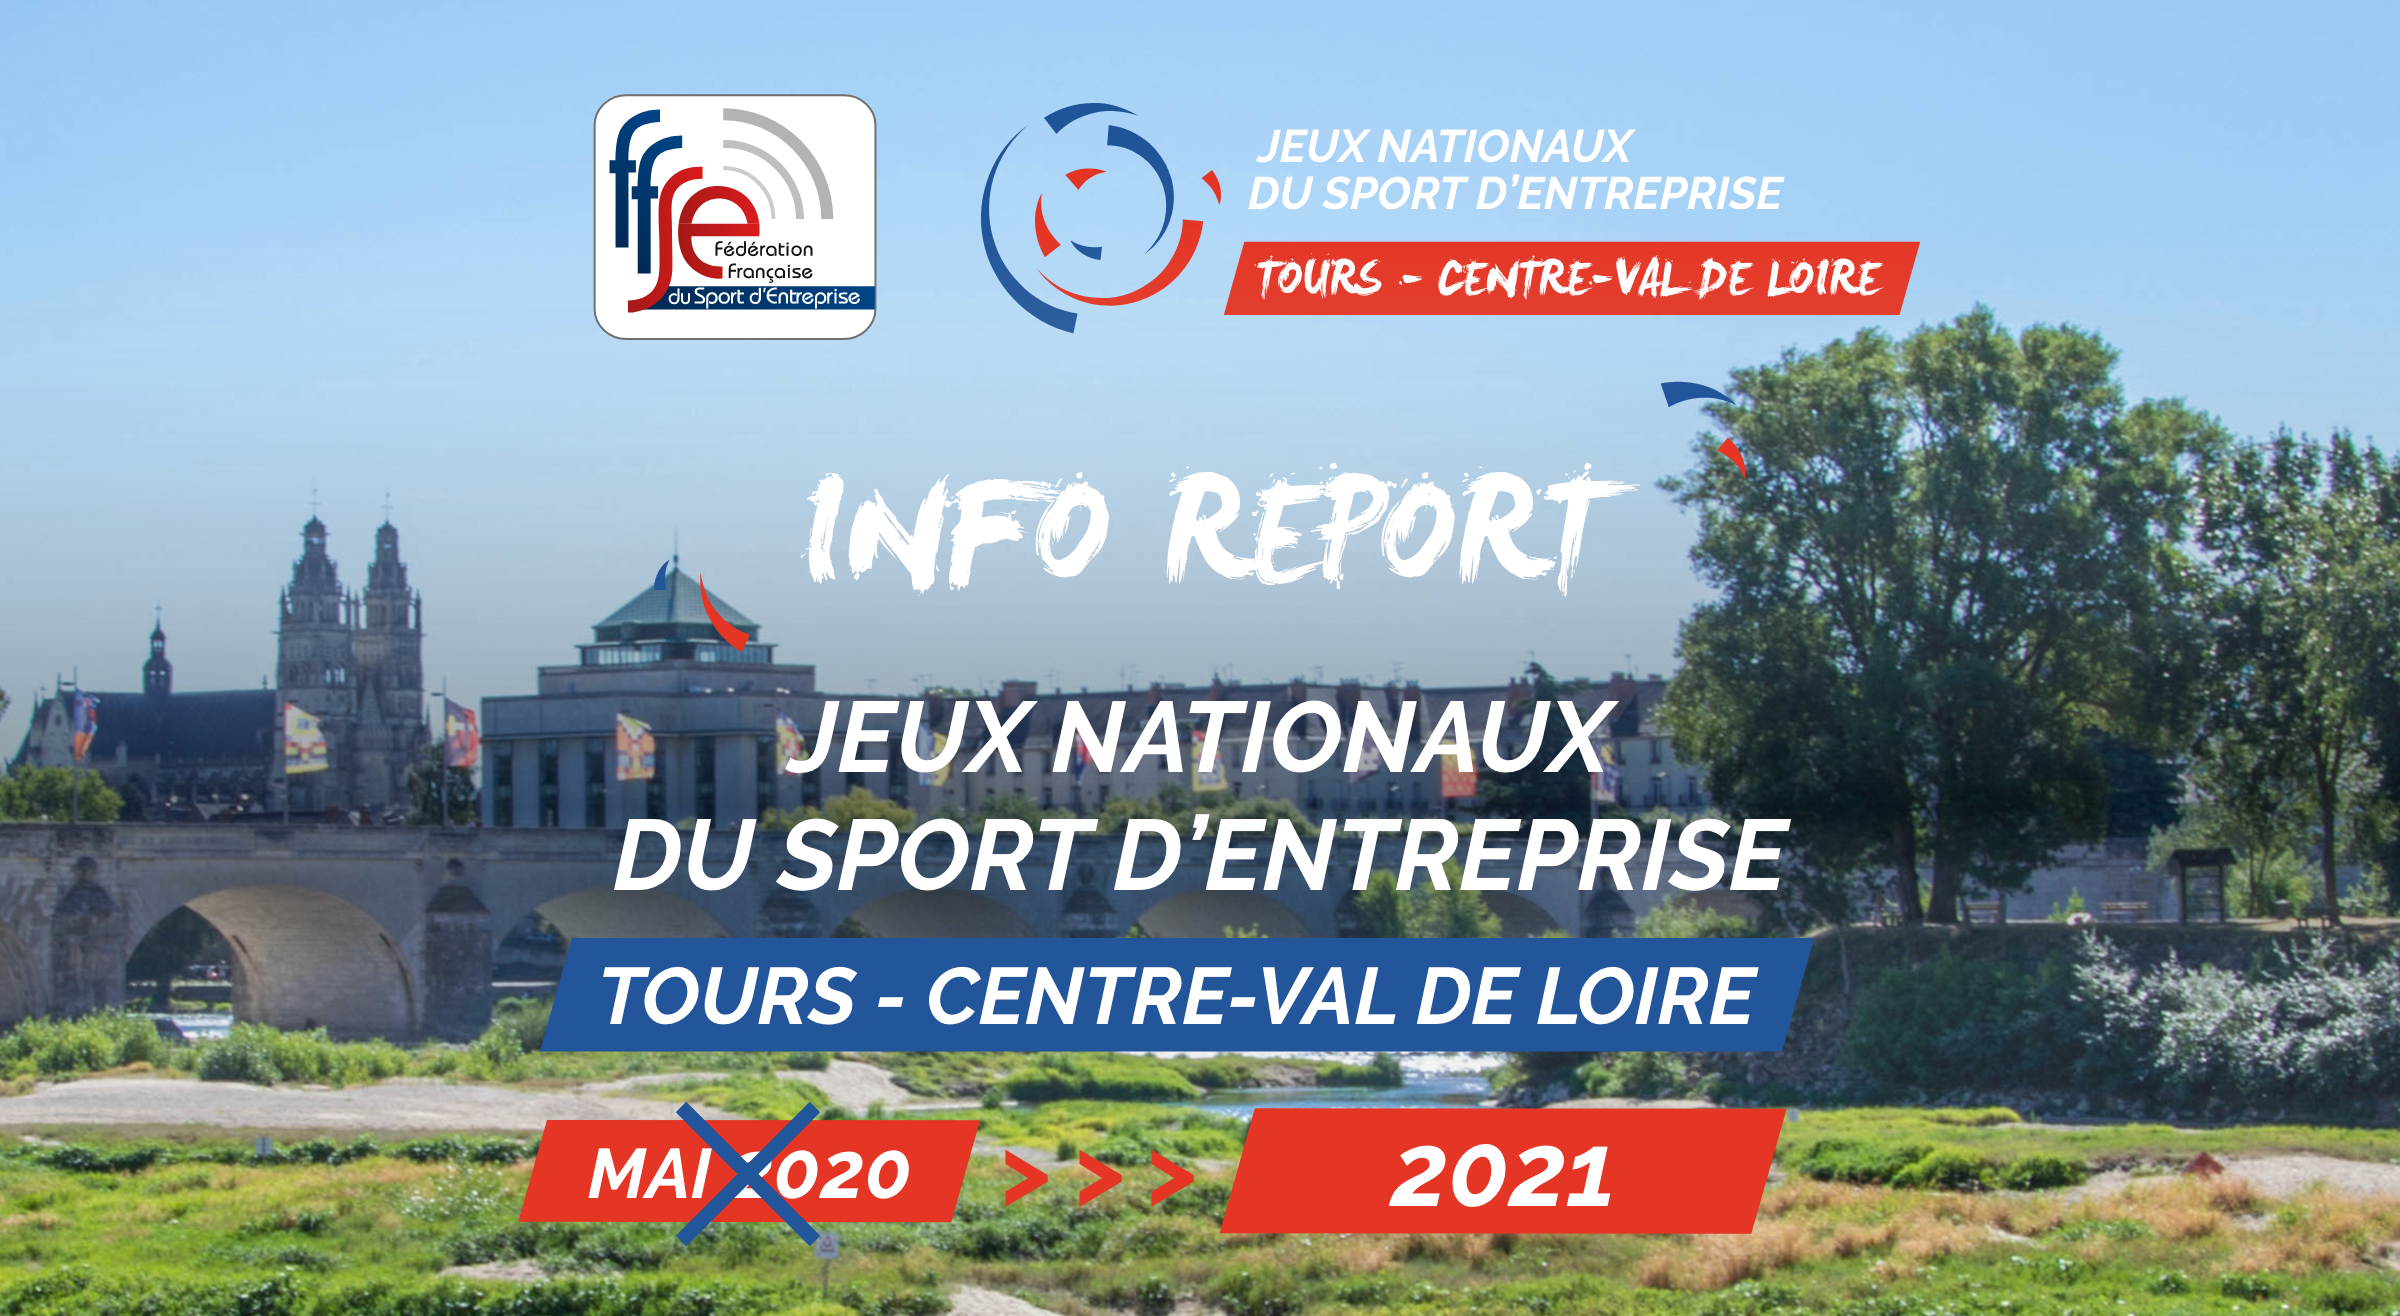 jnse_tour_banner_report_web